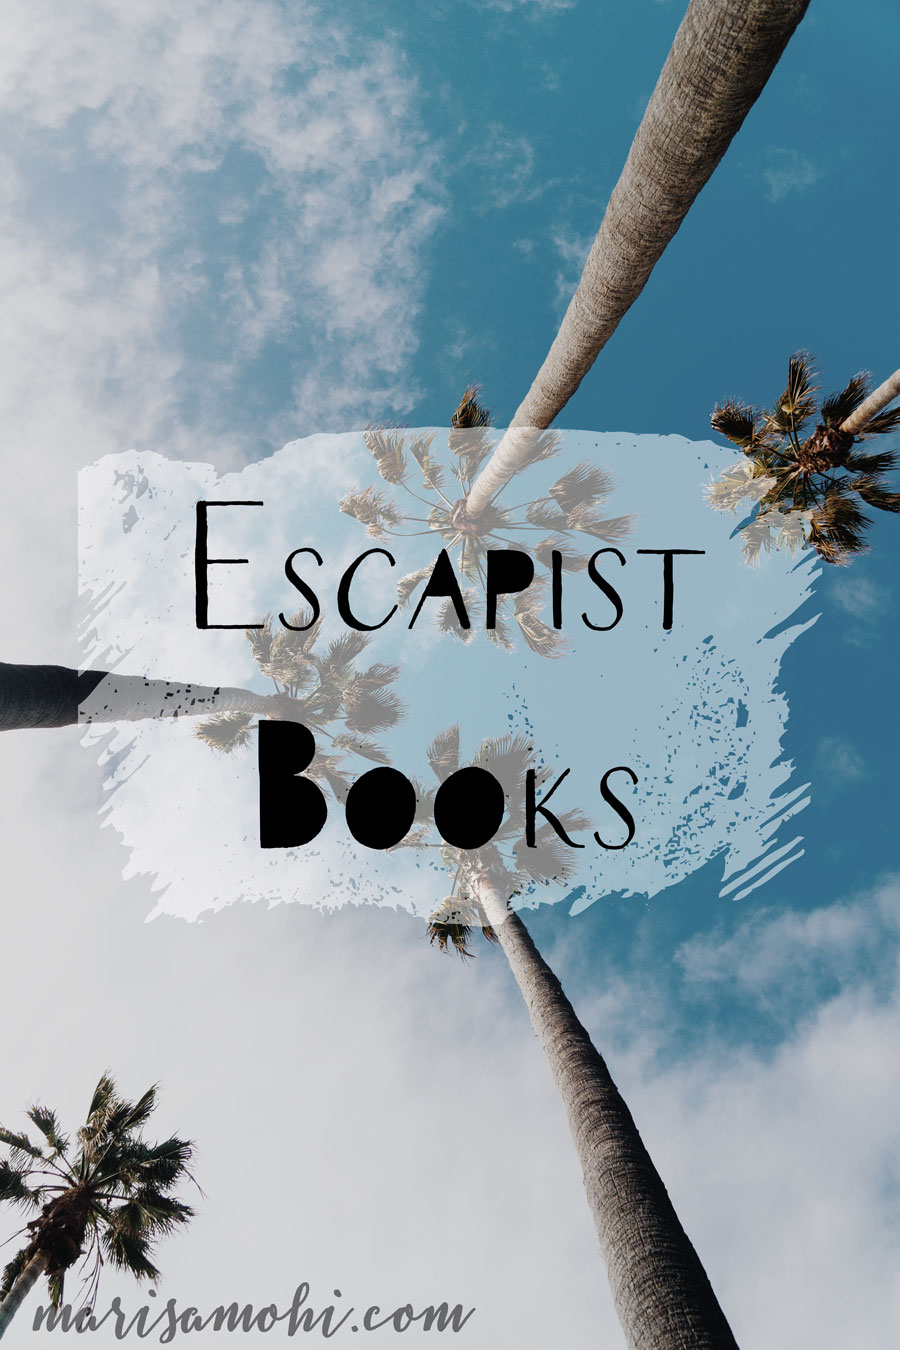 Escapist Books